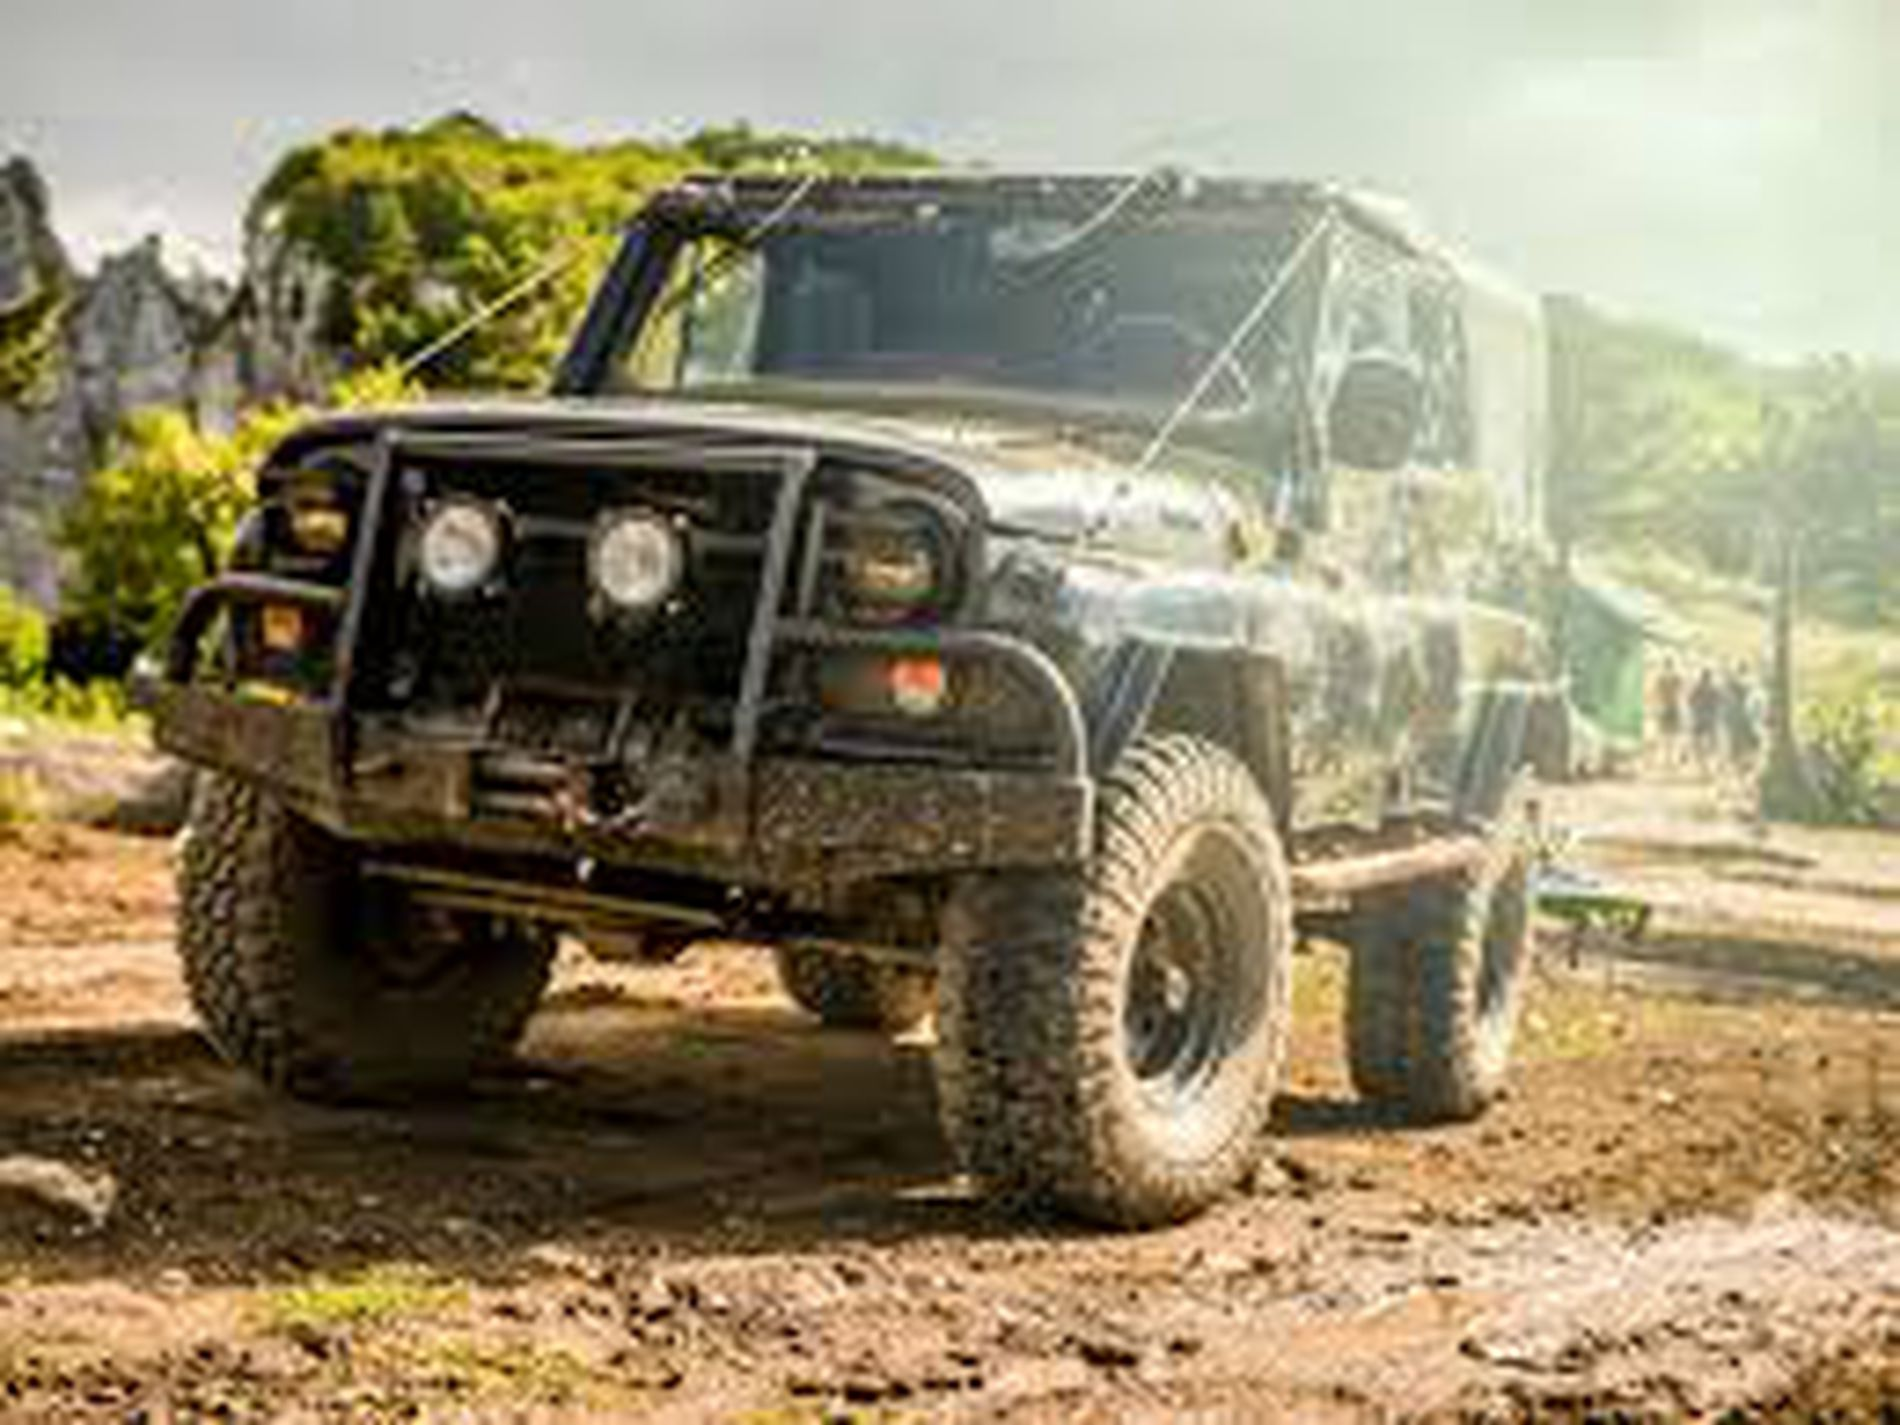 UNDER OFFER - 4WD Parts and Accessories Retail and Workshop Business For Sale